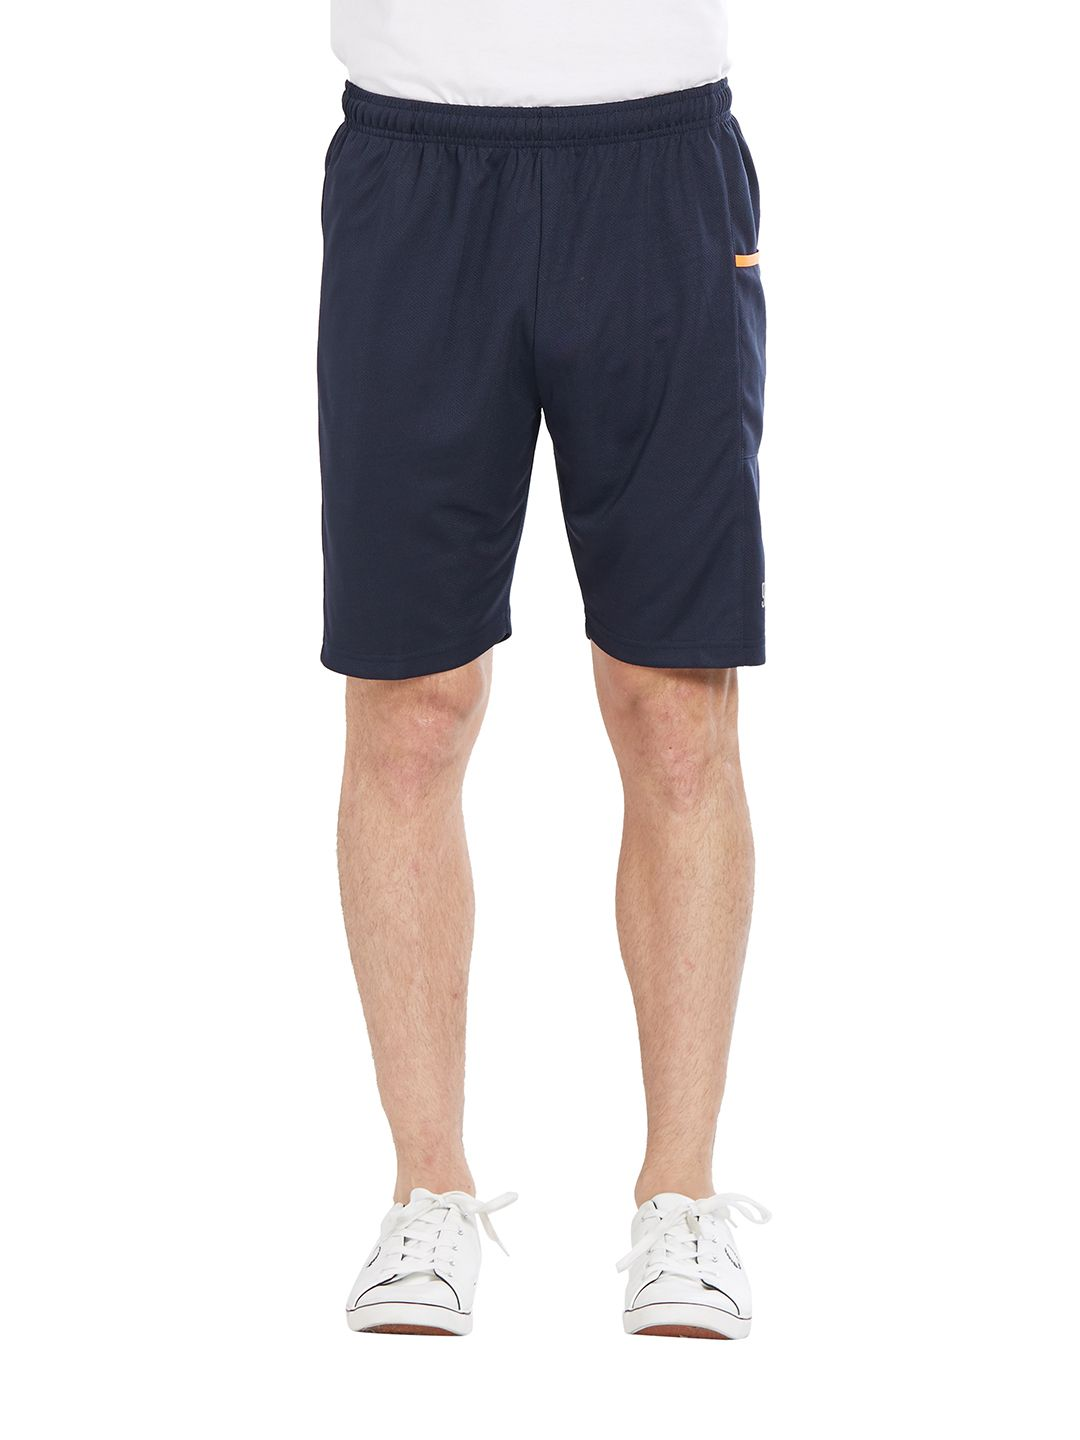 BONATY Navy Blue 100% Polyester Solid  Shorts For Men